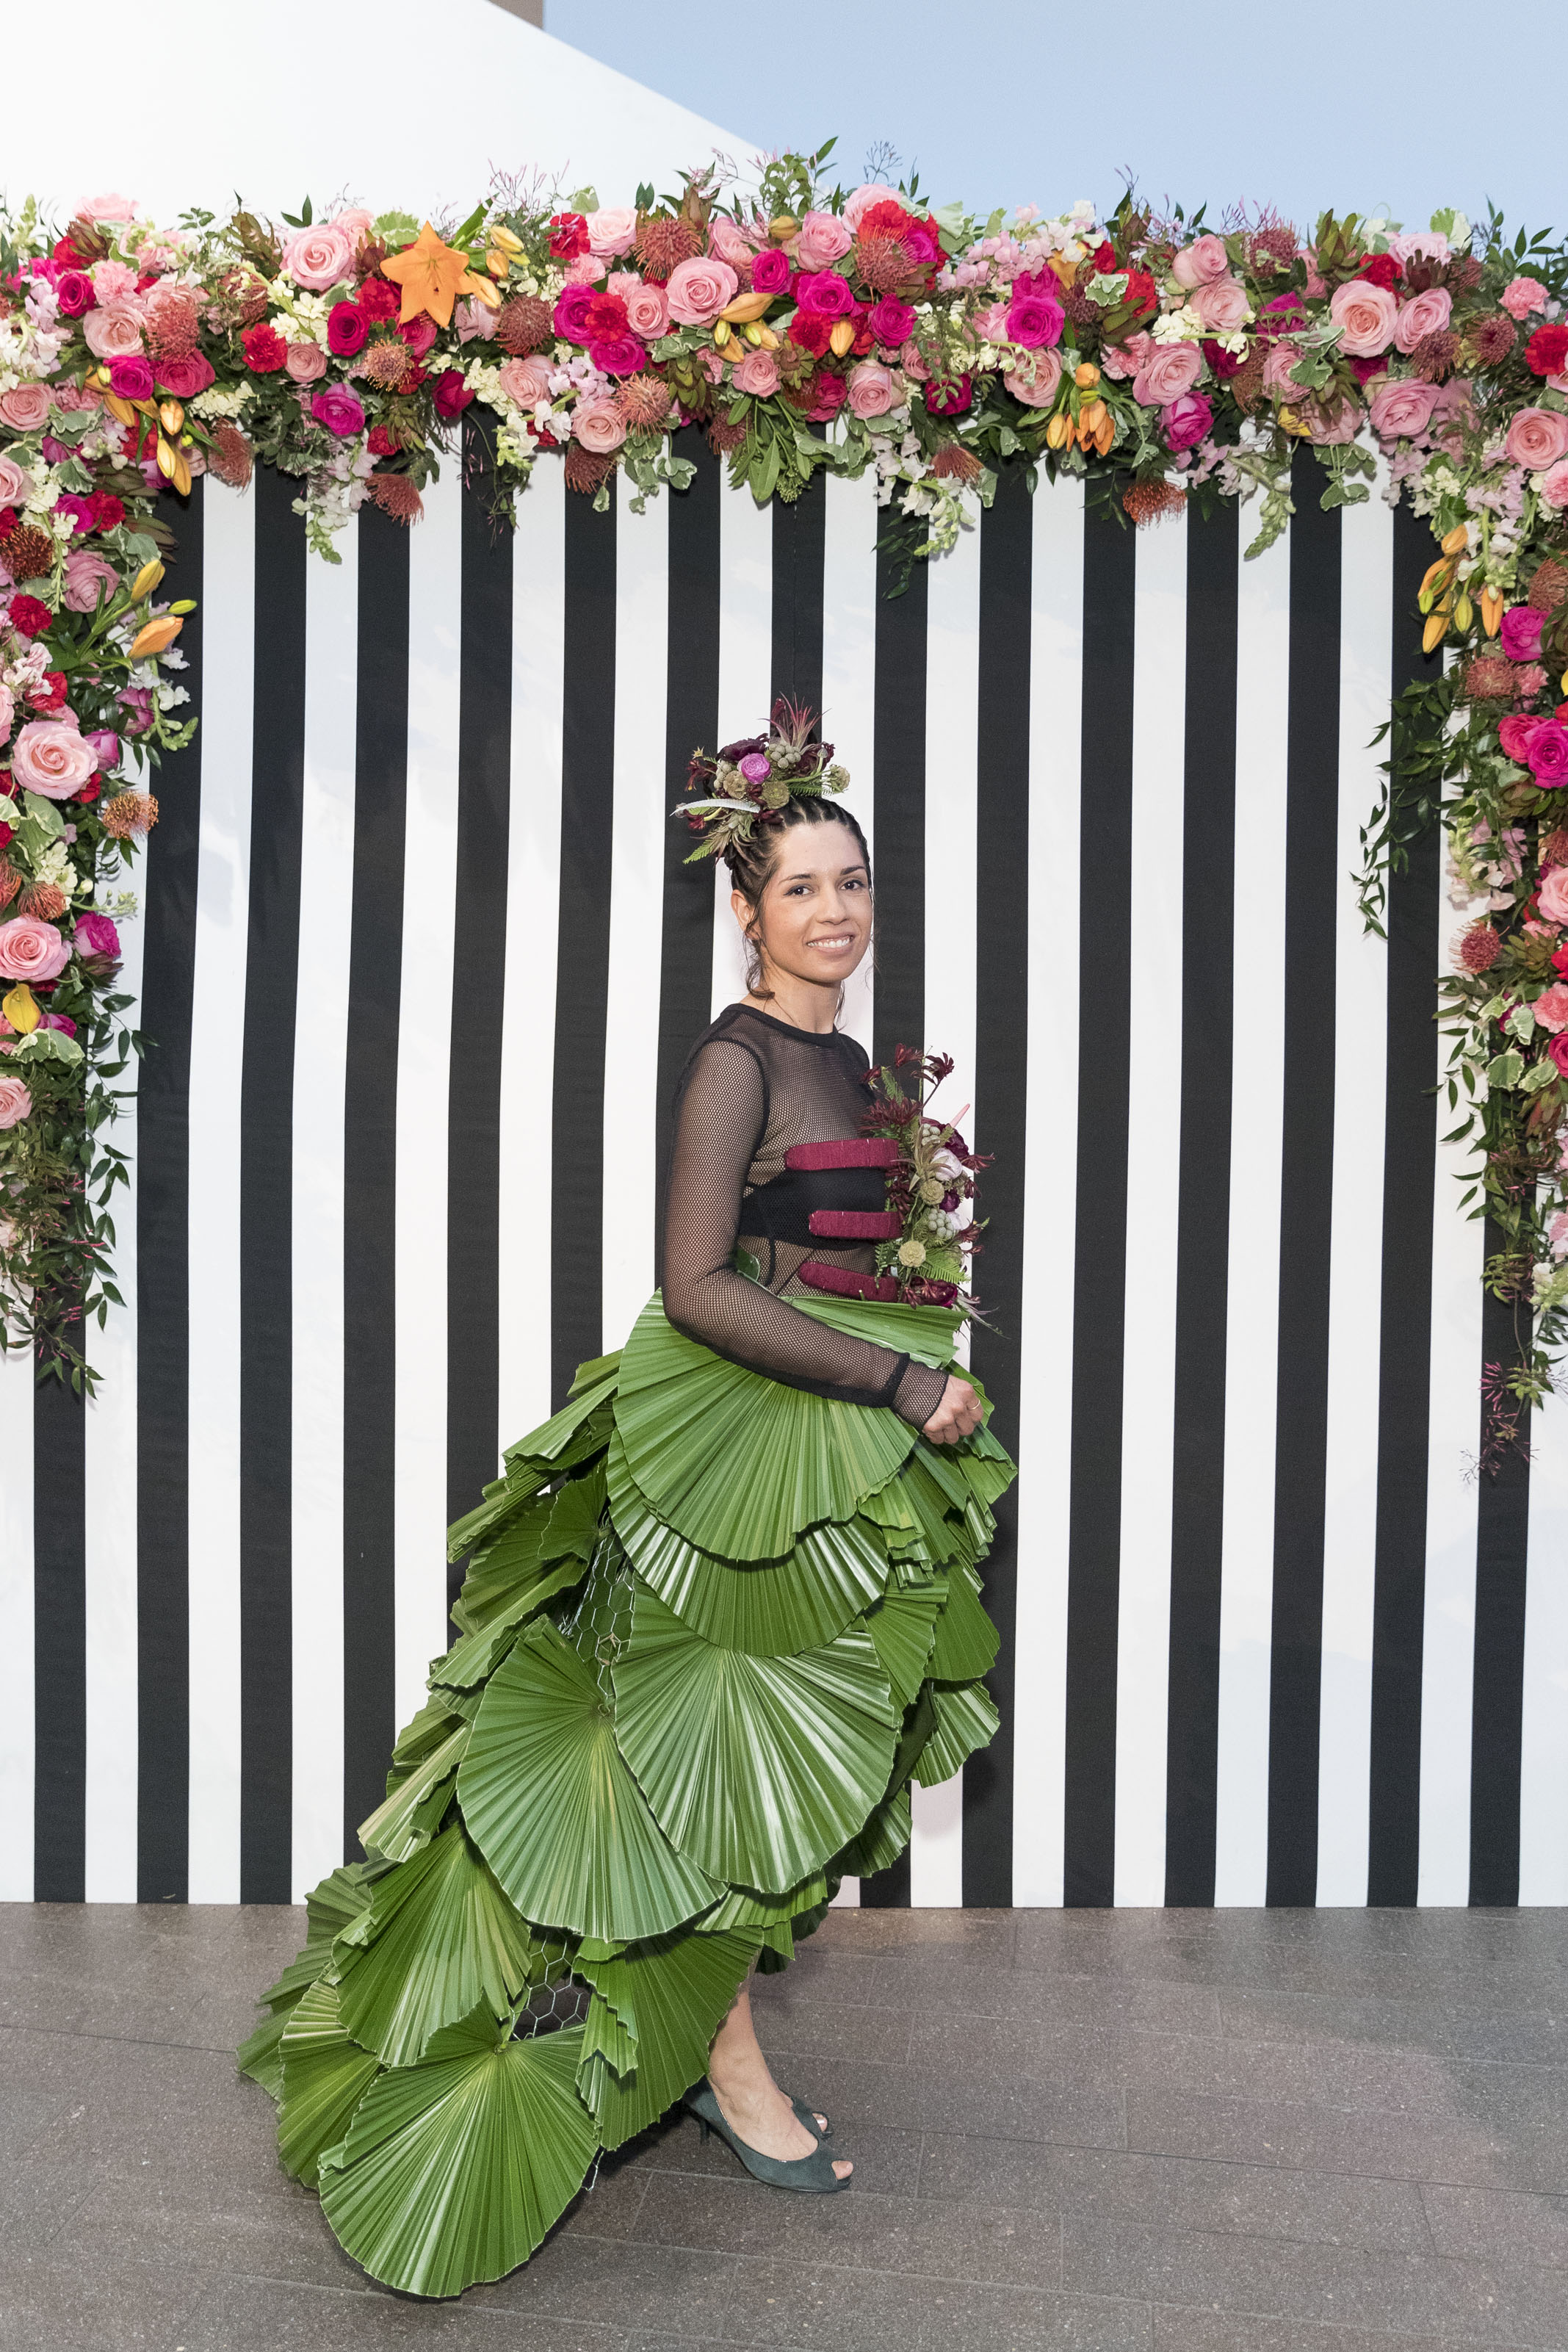 Liberty Velez models Rosa Mendoza's dress with a long train of pal leaves on March 12, 2018. Photo by Drew Altizer/Courtesy of the Fine Arts Museums of San Francisco.